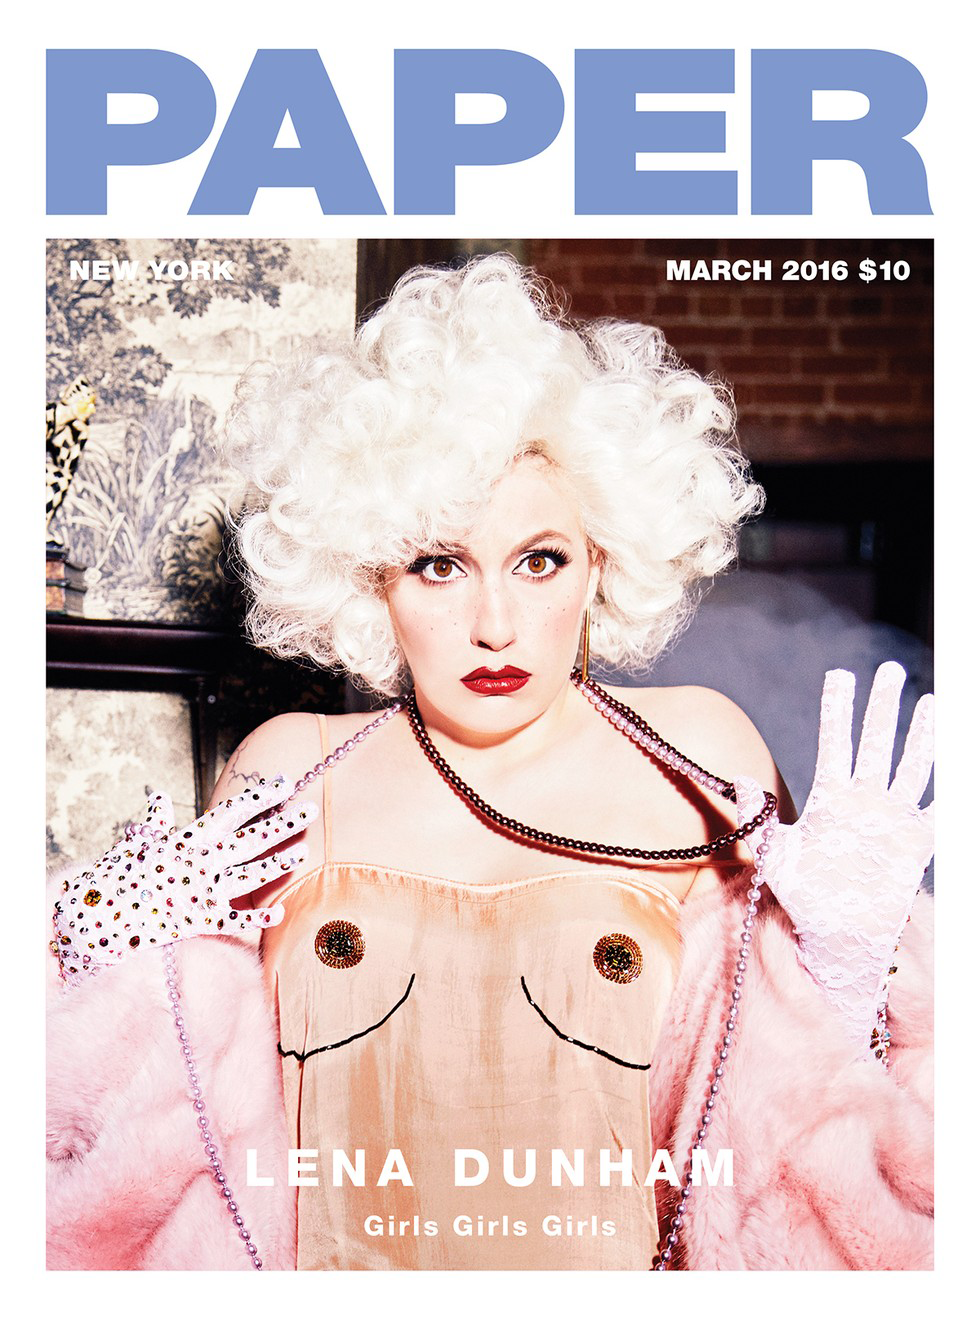 lena-dunham-by-ellen-von-unwerth-for-paper-magazine.png